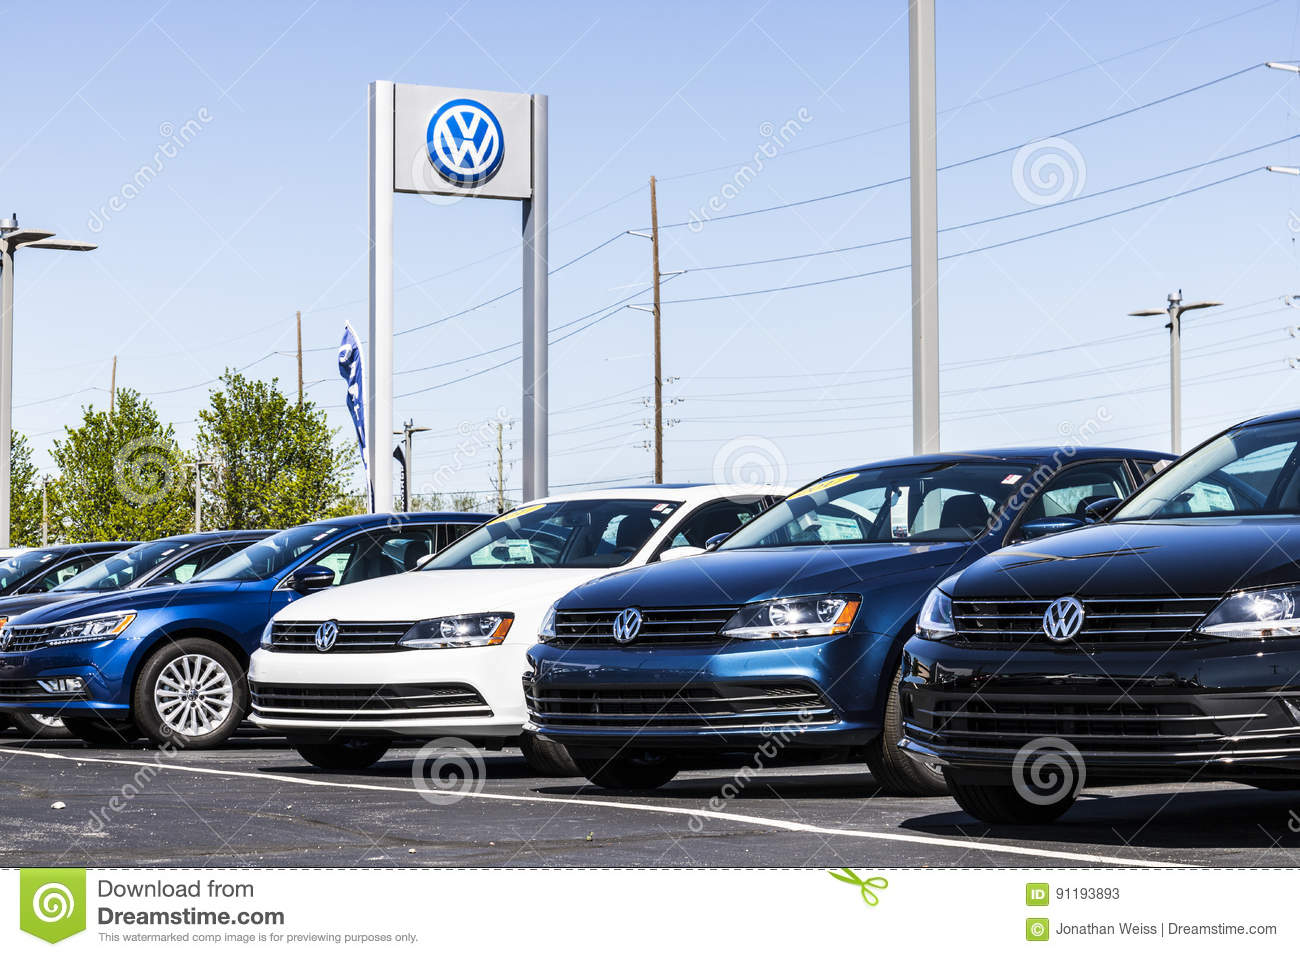 image dealership cars largest circa world vw s is indianapolis among volkswagen and photo the suv may stock